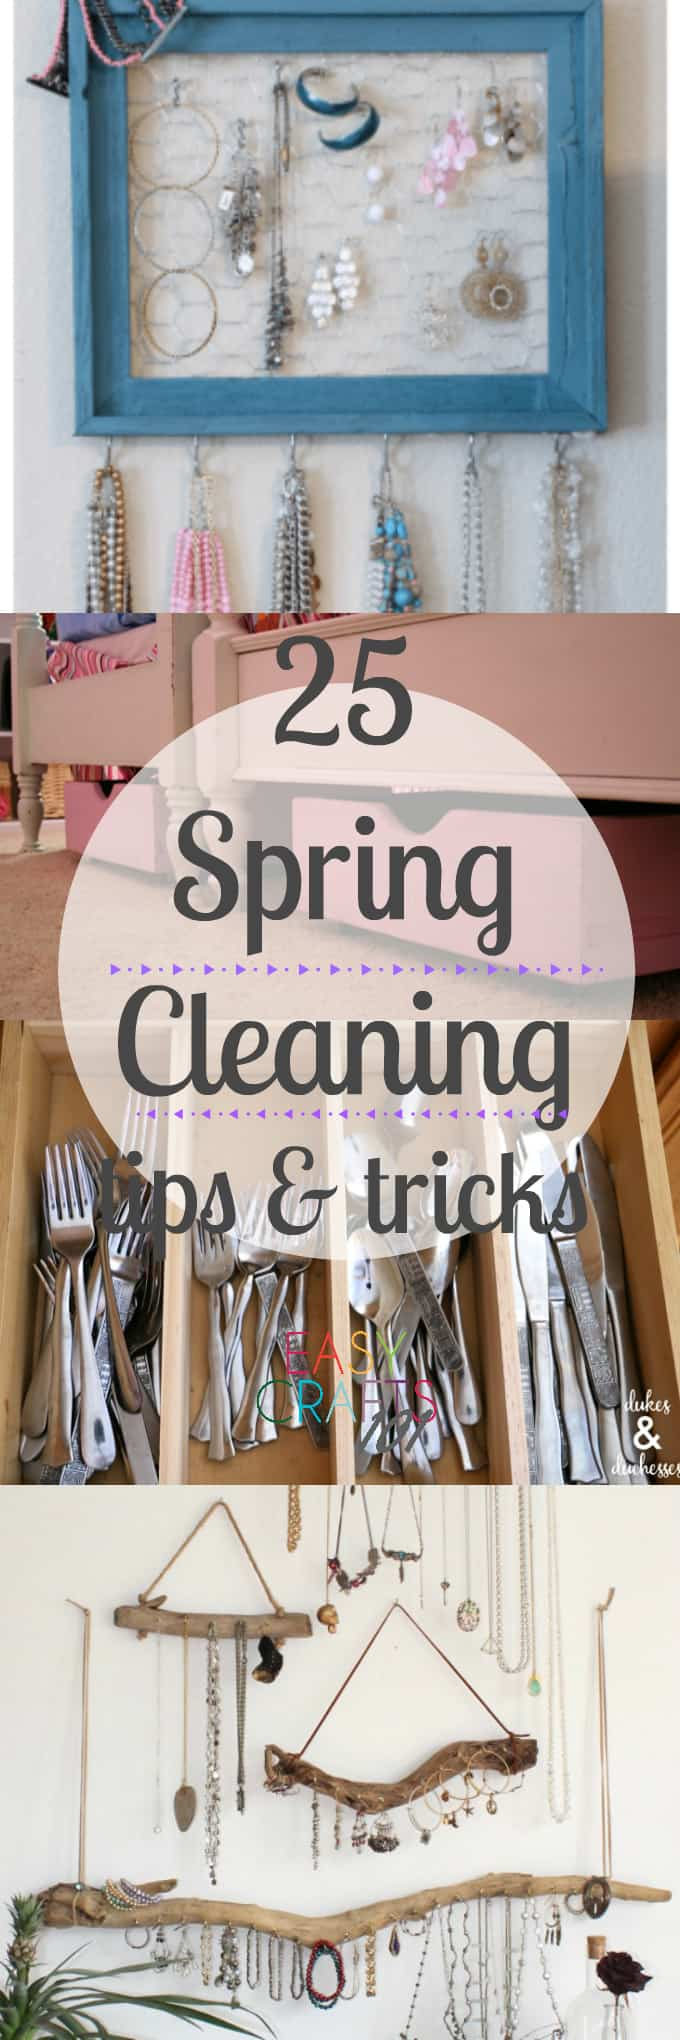 Spring Cleaning Pin